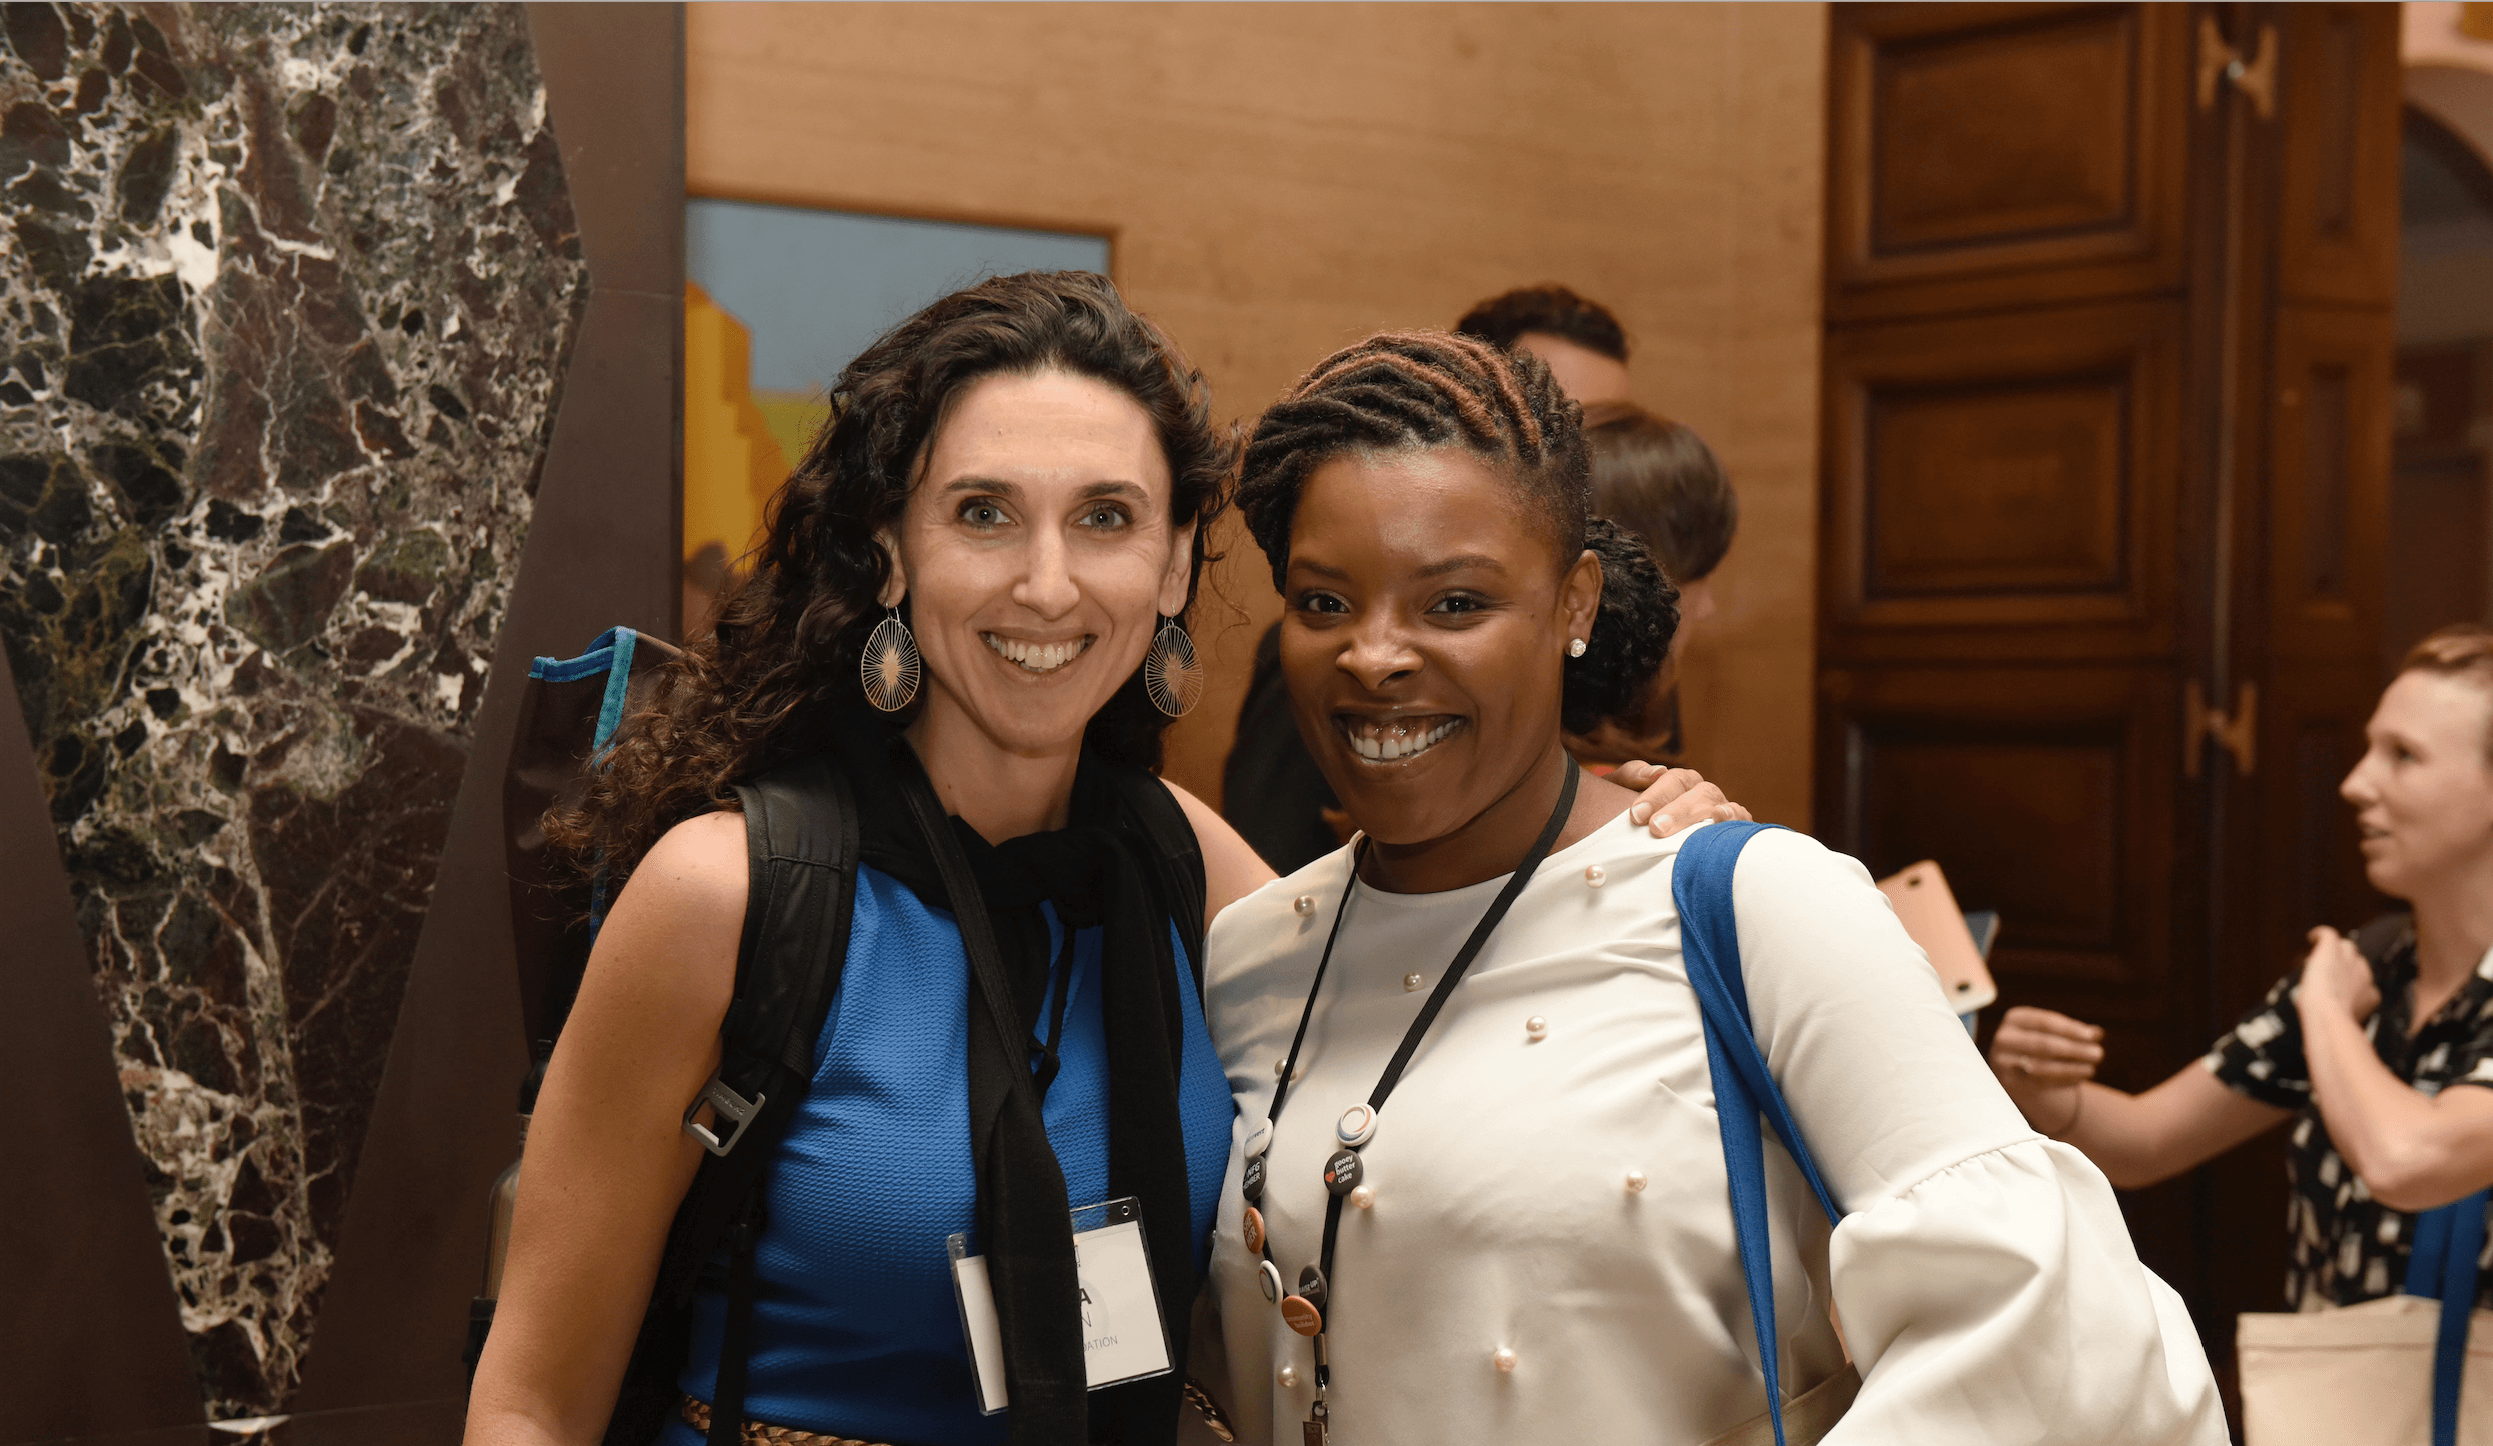 Anna Lefer Kuhn of The Arca Foundation and Taina McField, formerly of The Nathan Cummings Foundation.